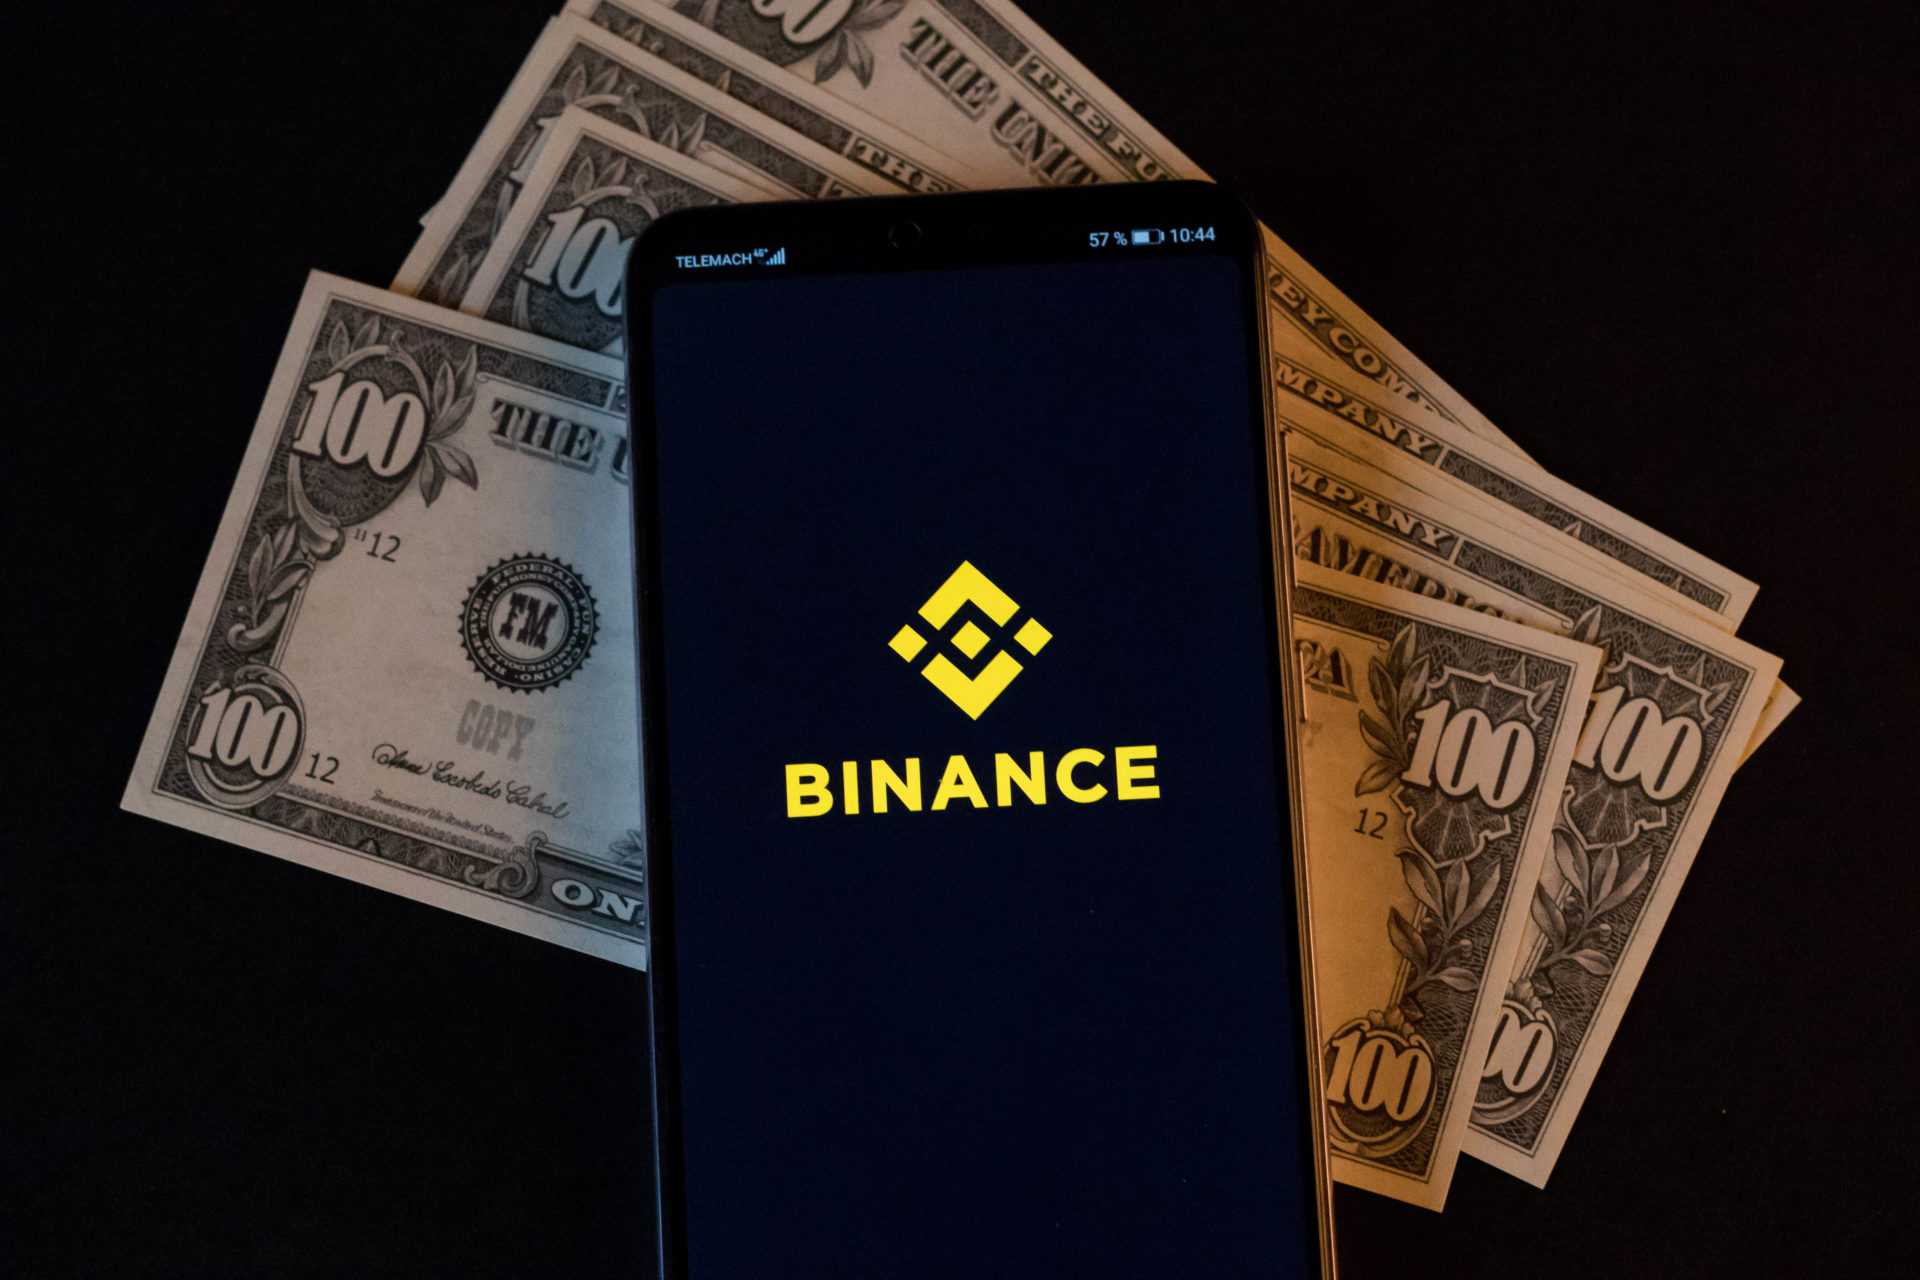 Breaking: Binance Expected To Launch Blockchain Today, Decentralized Crypto Exchange To Follow 13